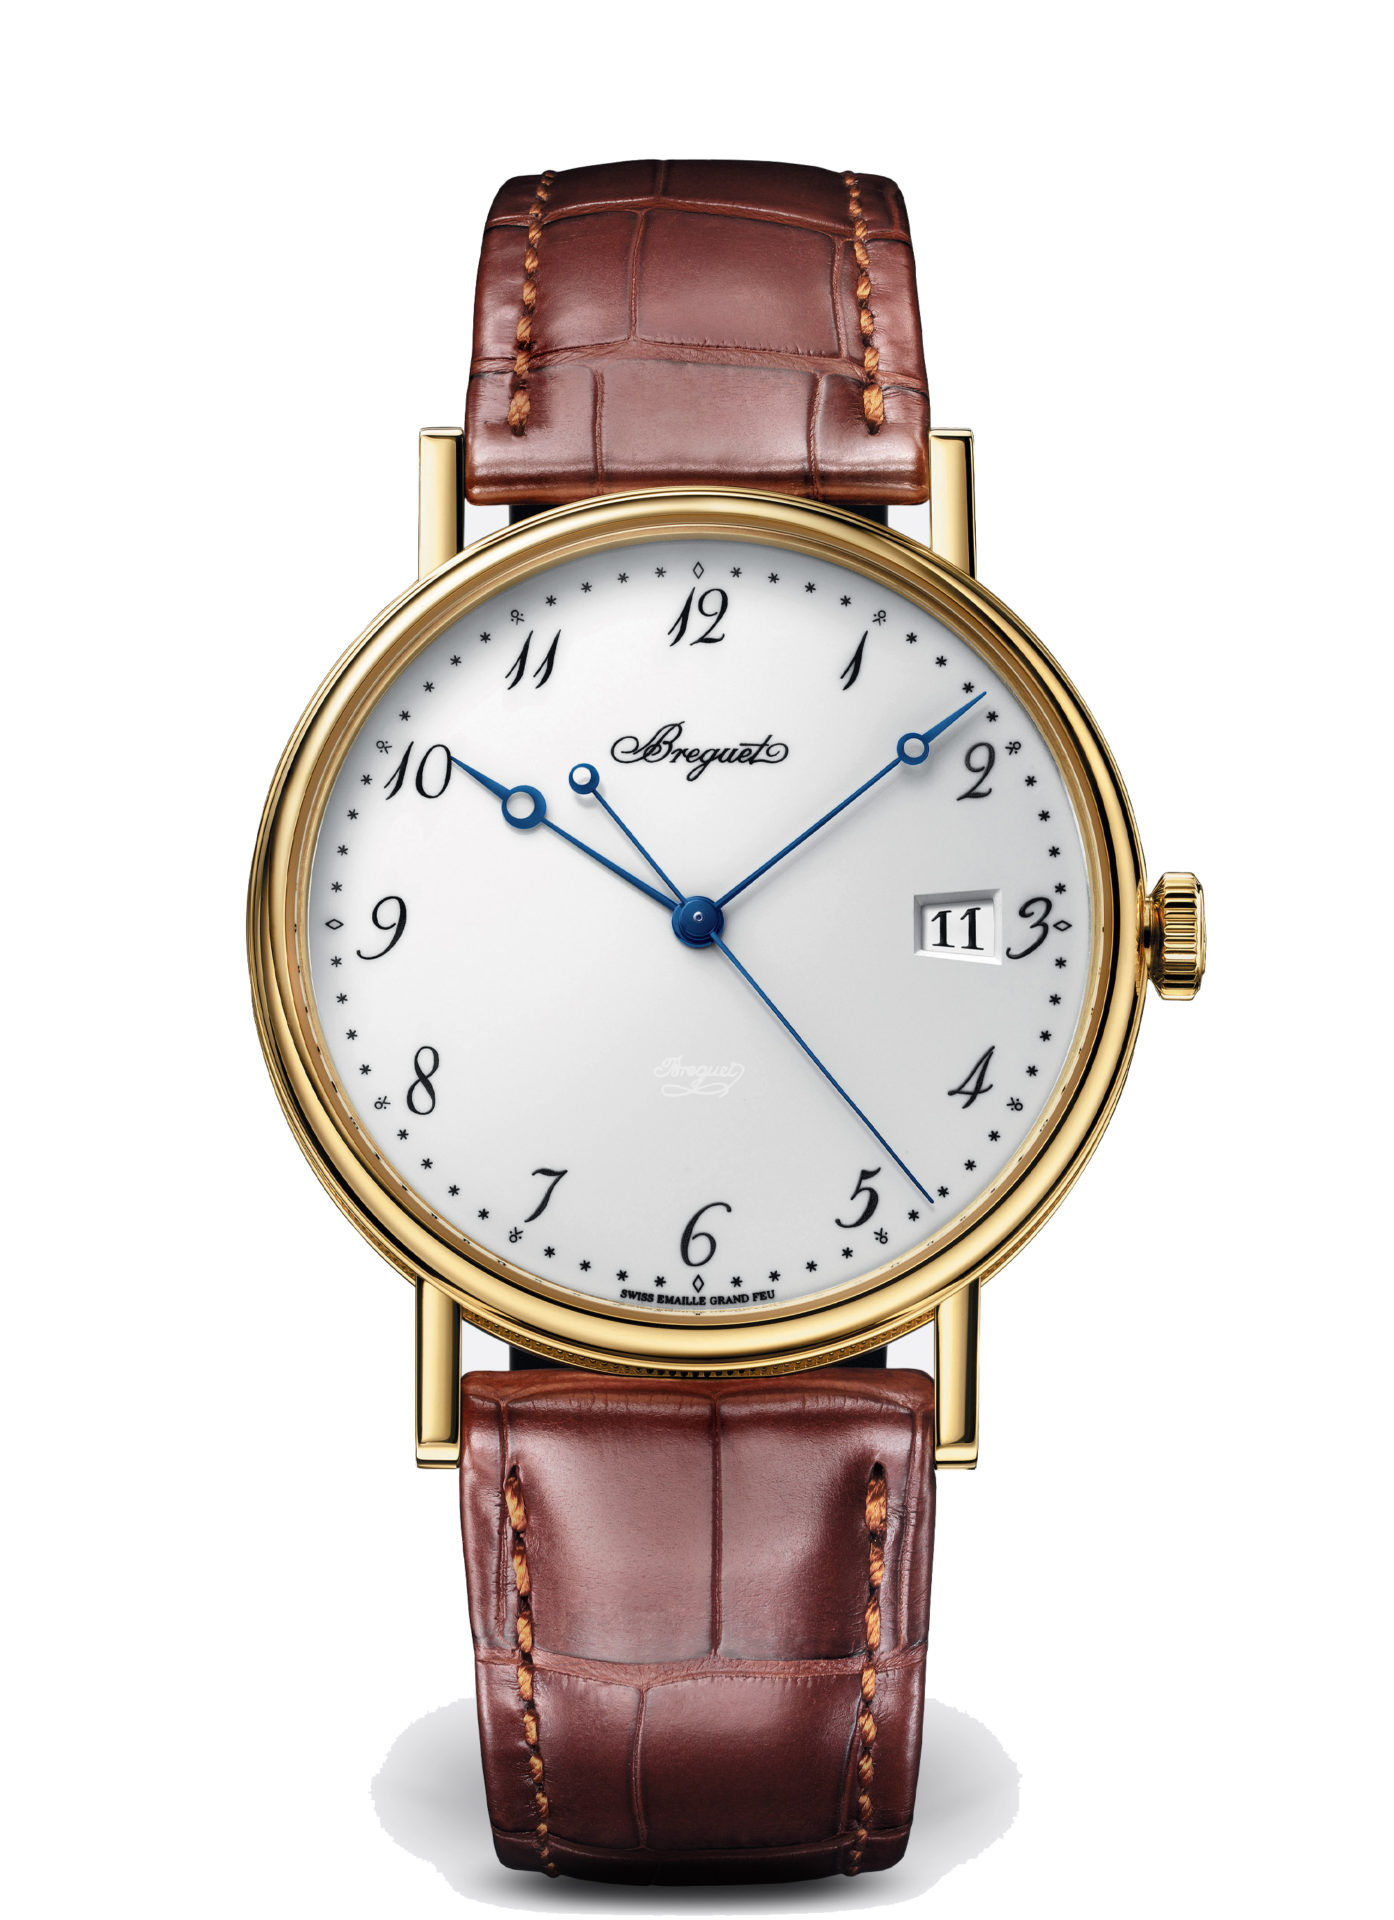 Breguet-Classique-5177-Hall-of-Time-5177ba-29-9v6 copie